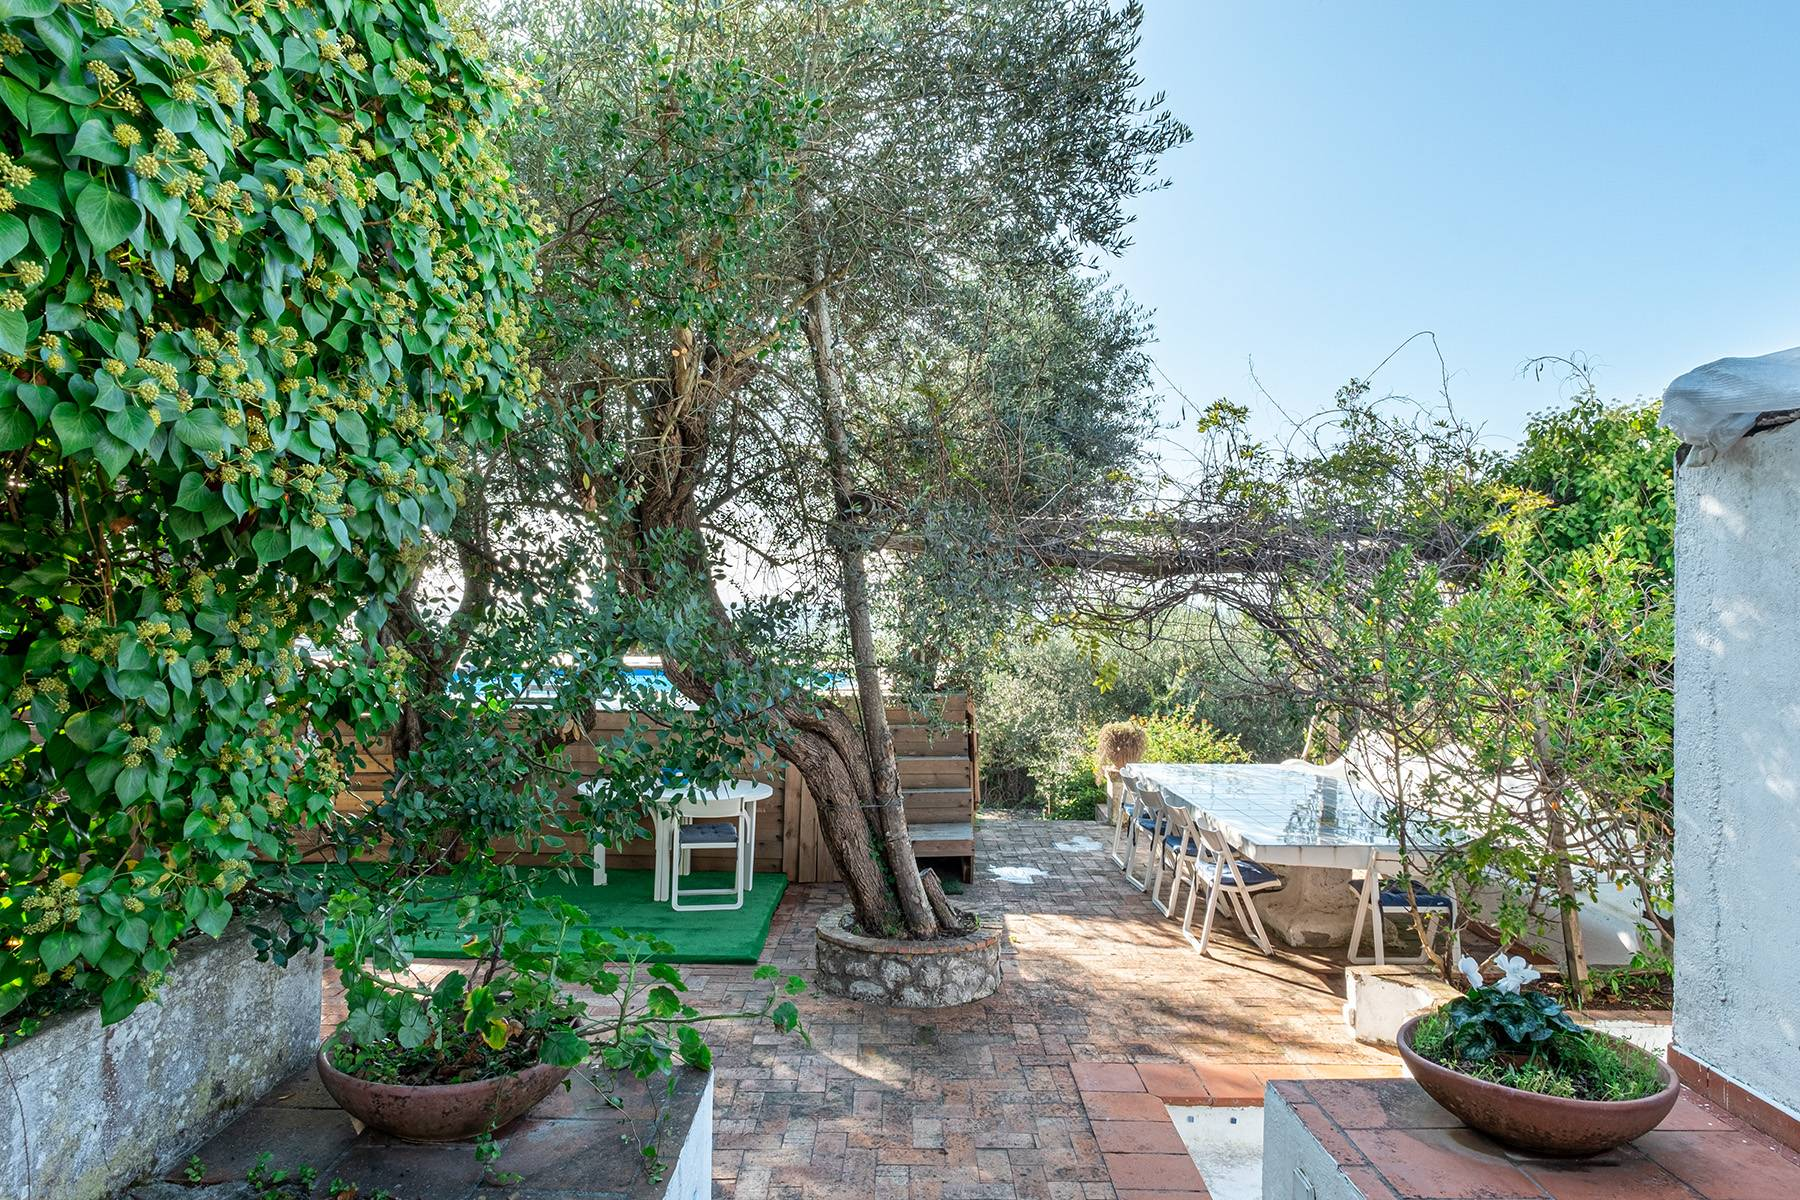 Charming villa with olive grove and swimming pool overlooking the sea - 21